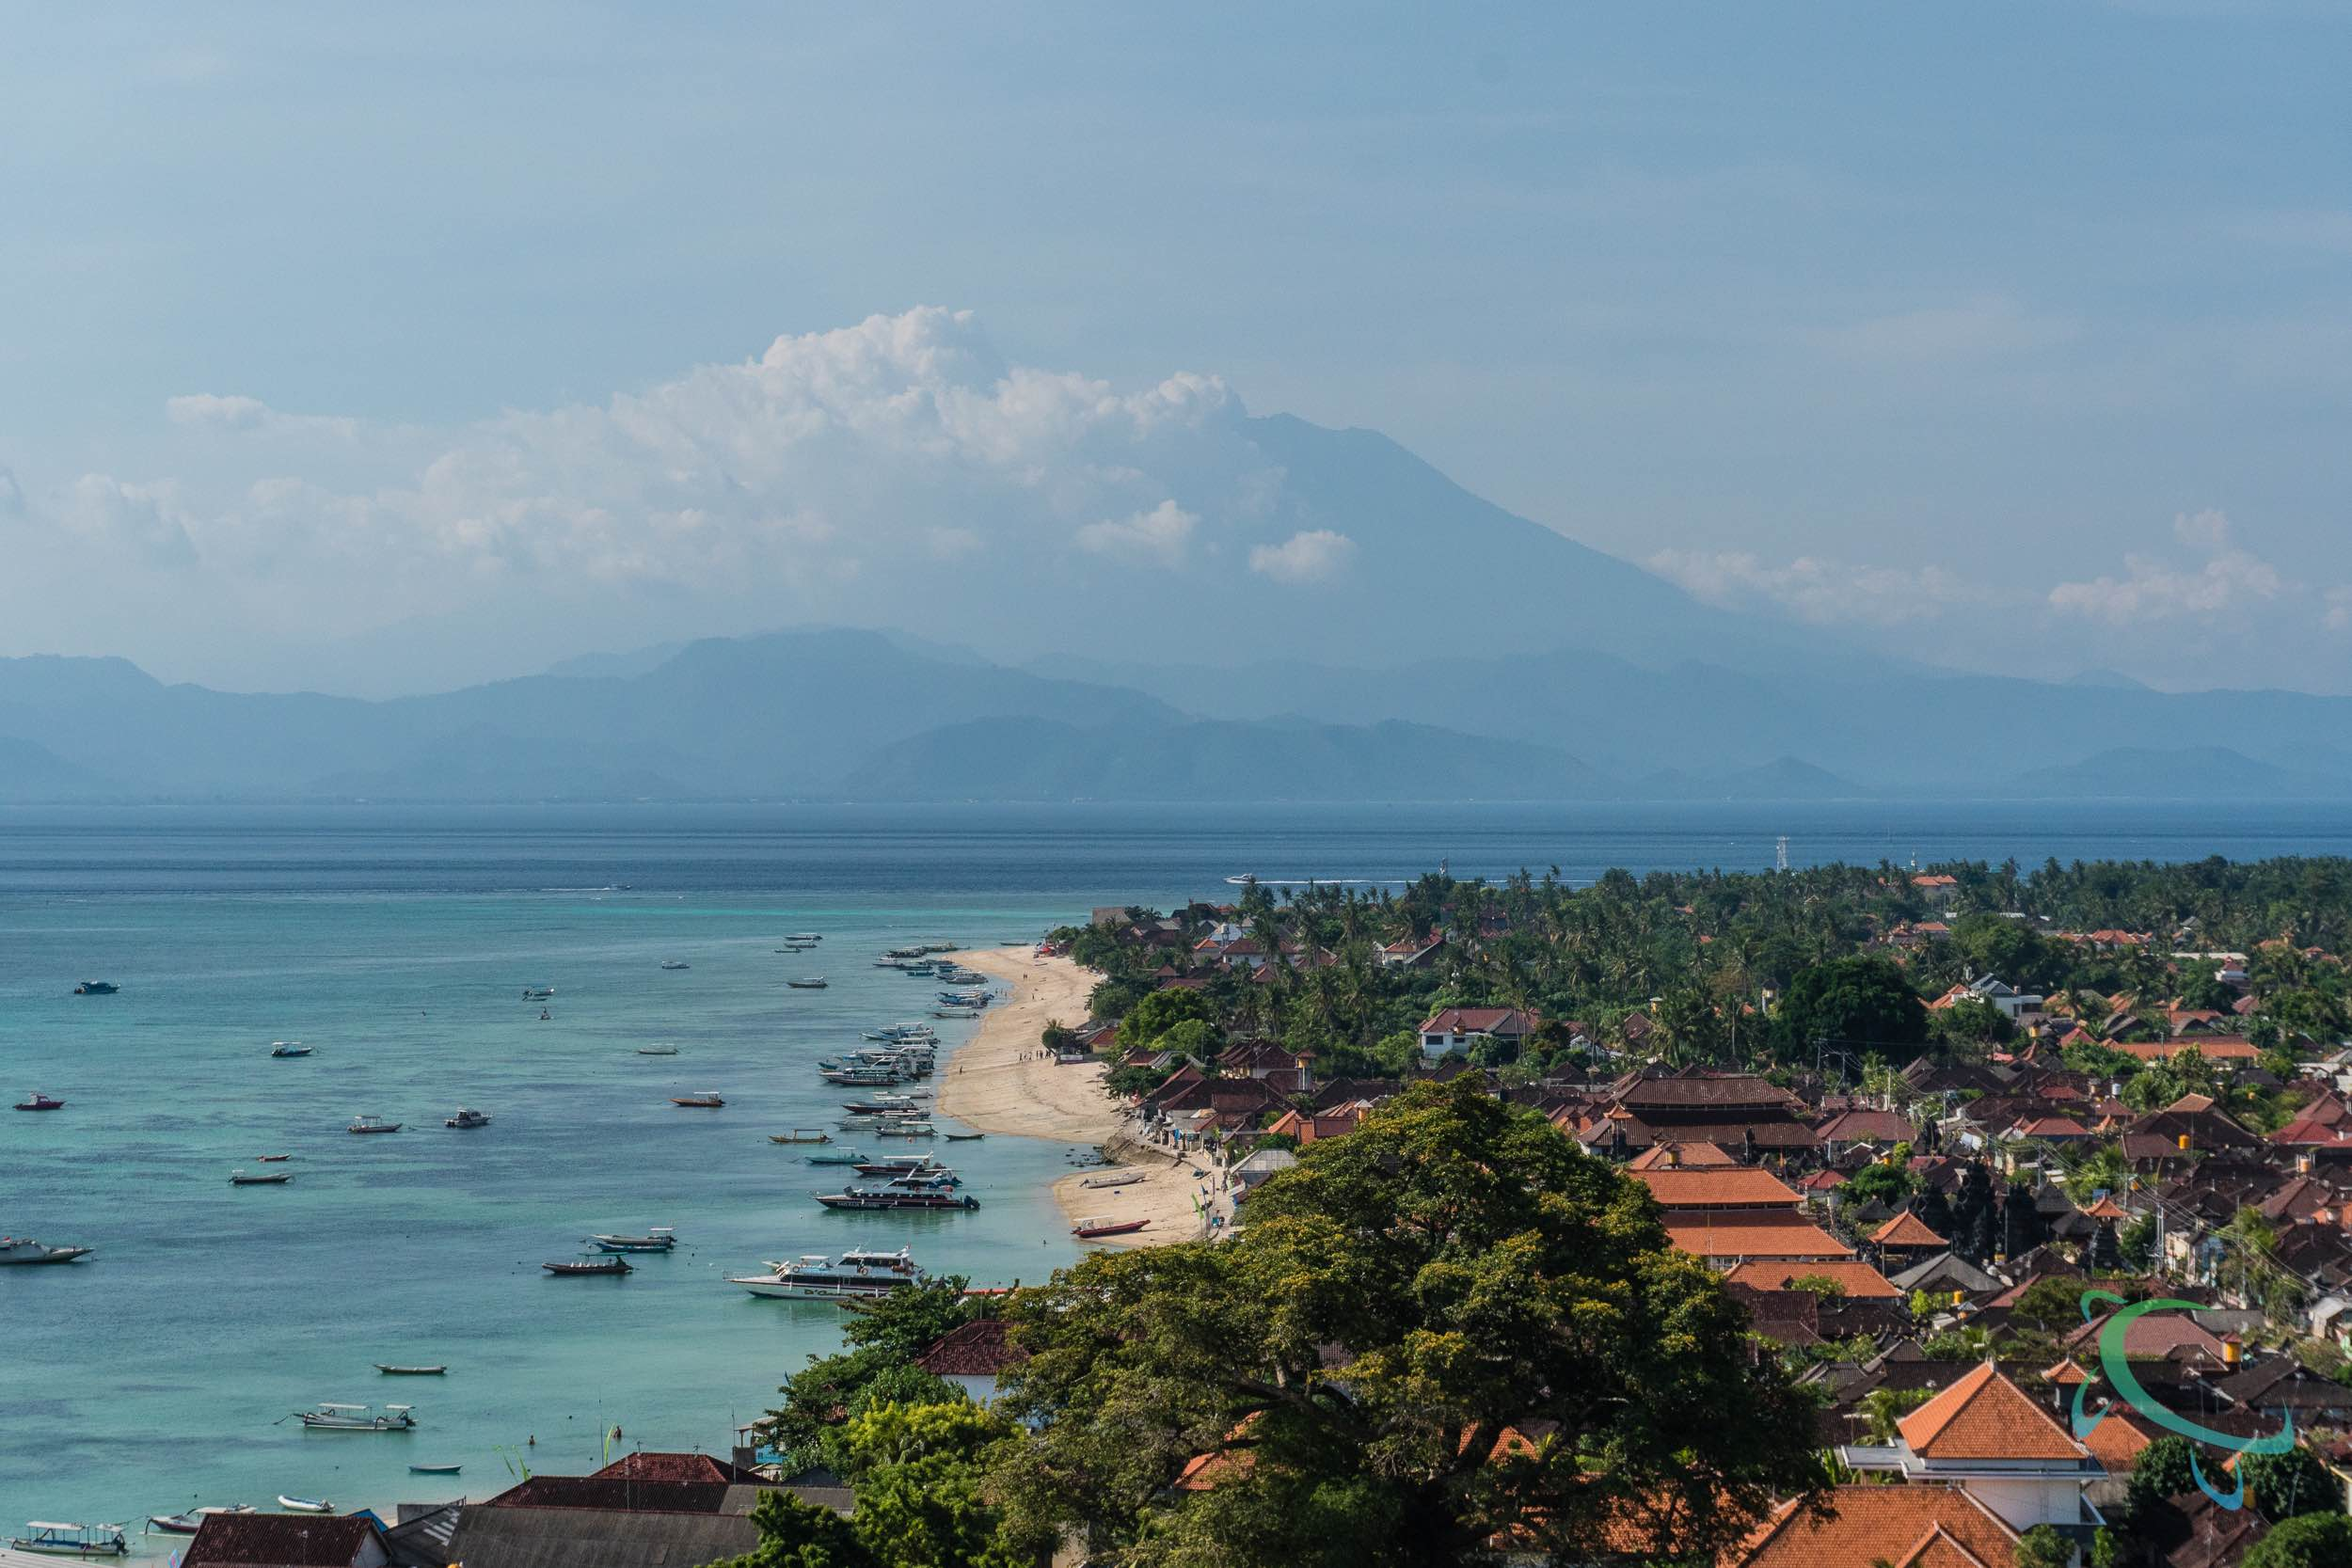 Panorama View of Nusa Lembongan